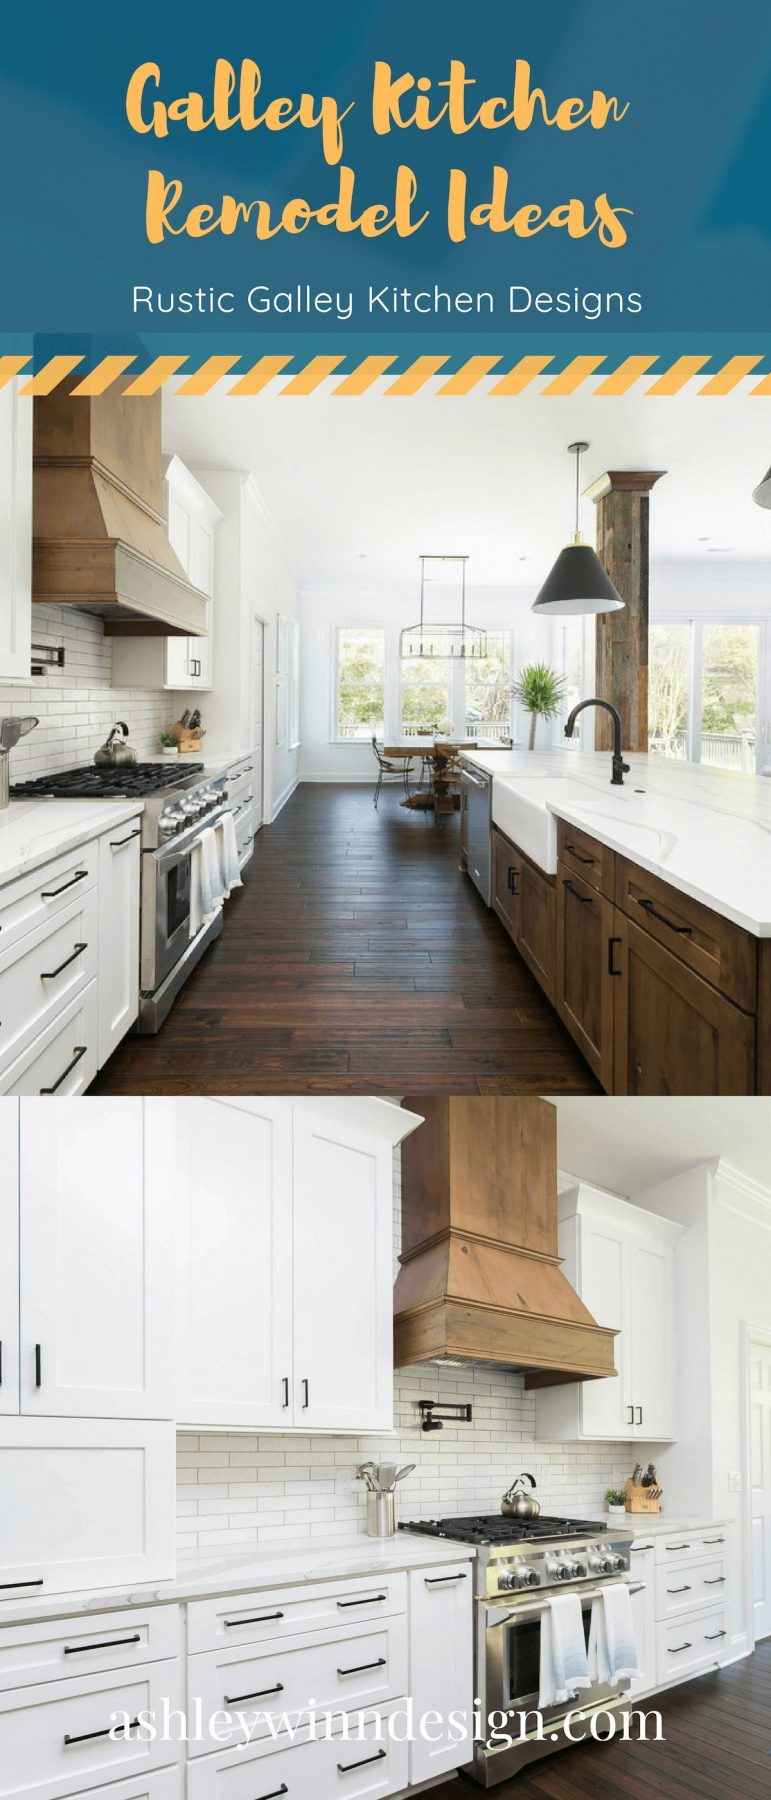 40 Awesome Galley Kitchen Remodel Ideas Design Inspiration In 2020